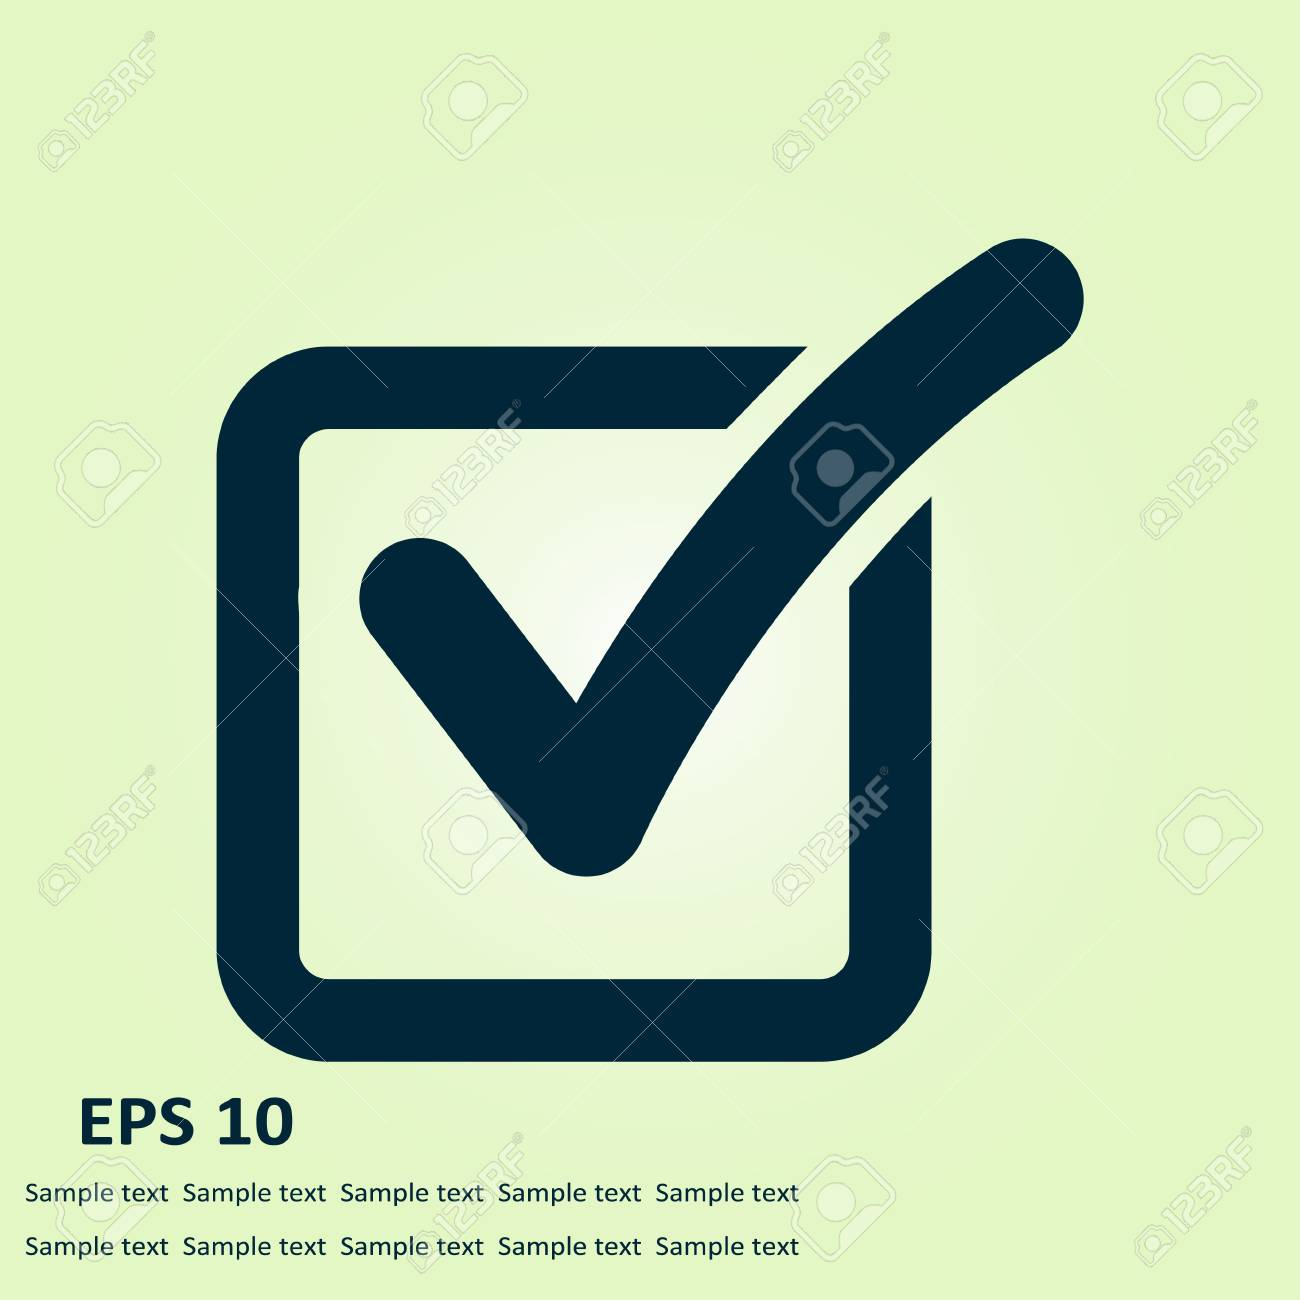 Check list button icon check mark in box sign royalty free check list button icon check mark in box sign stock vector 84634817 biocorpaavc Image collections